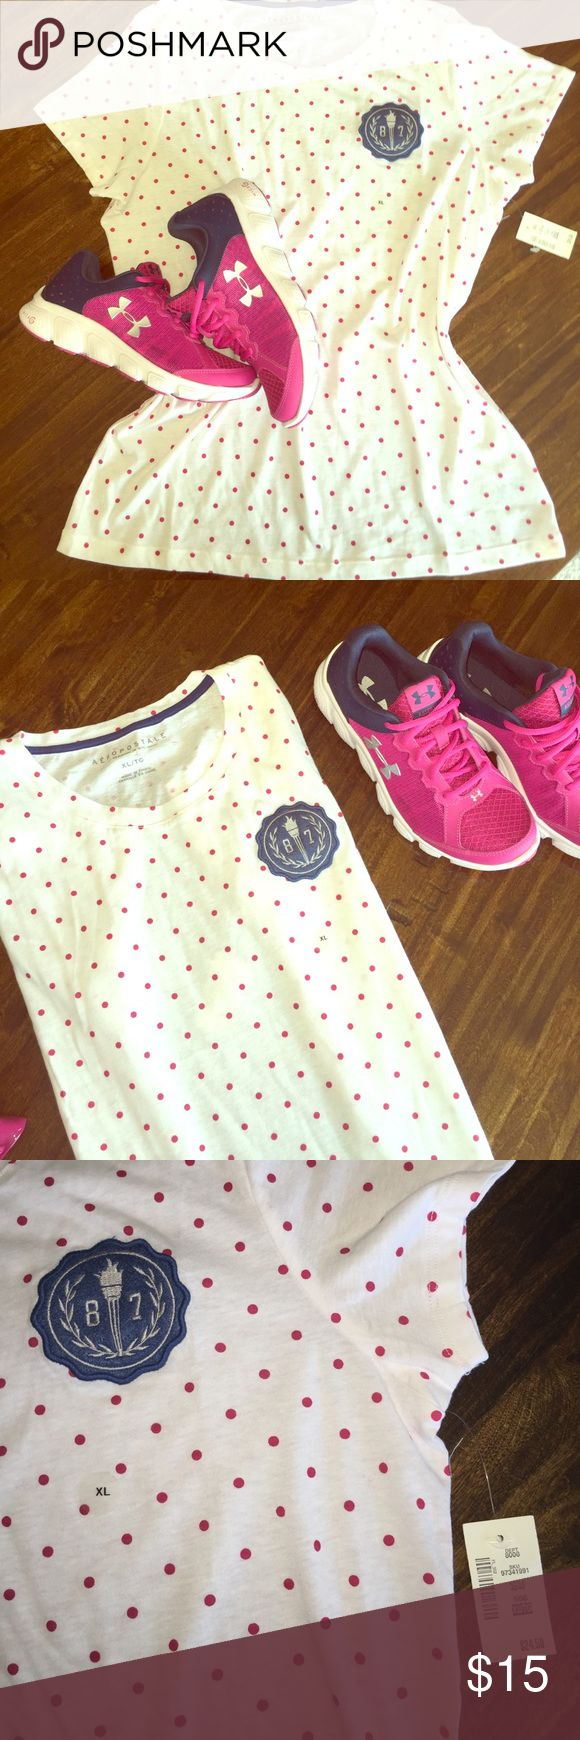 Aéropostale Pink Polka Dot Tee Light weight. Slightly sheer. Would be a great workout tee over a sports bra. Super cute with shorts. Wear oversized with a bathing suit as a comfy cover up. Aeropostale Tops Tees - Short Sleeve